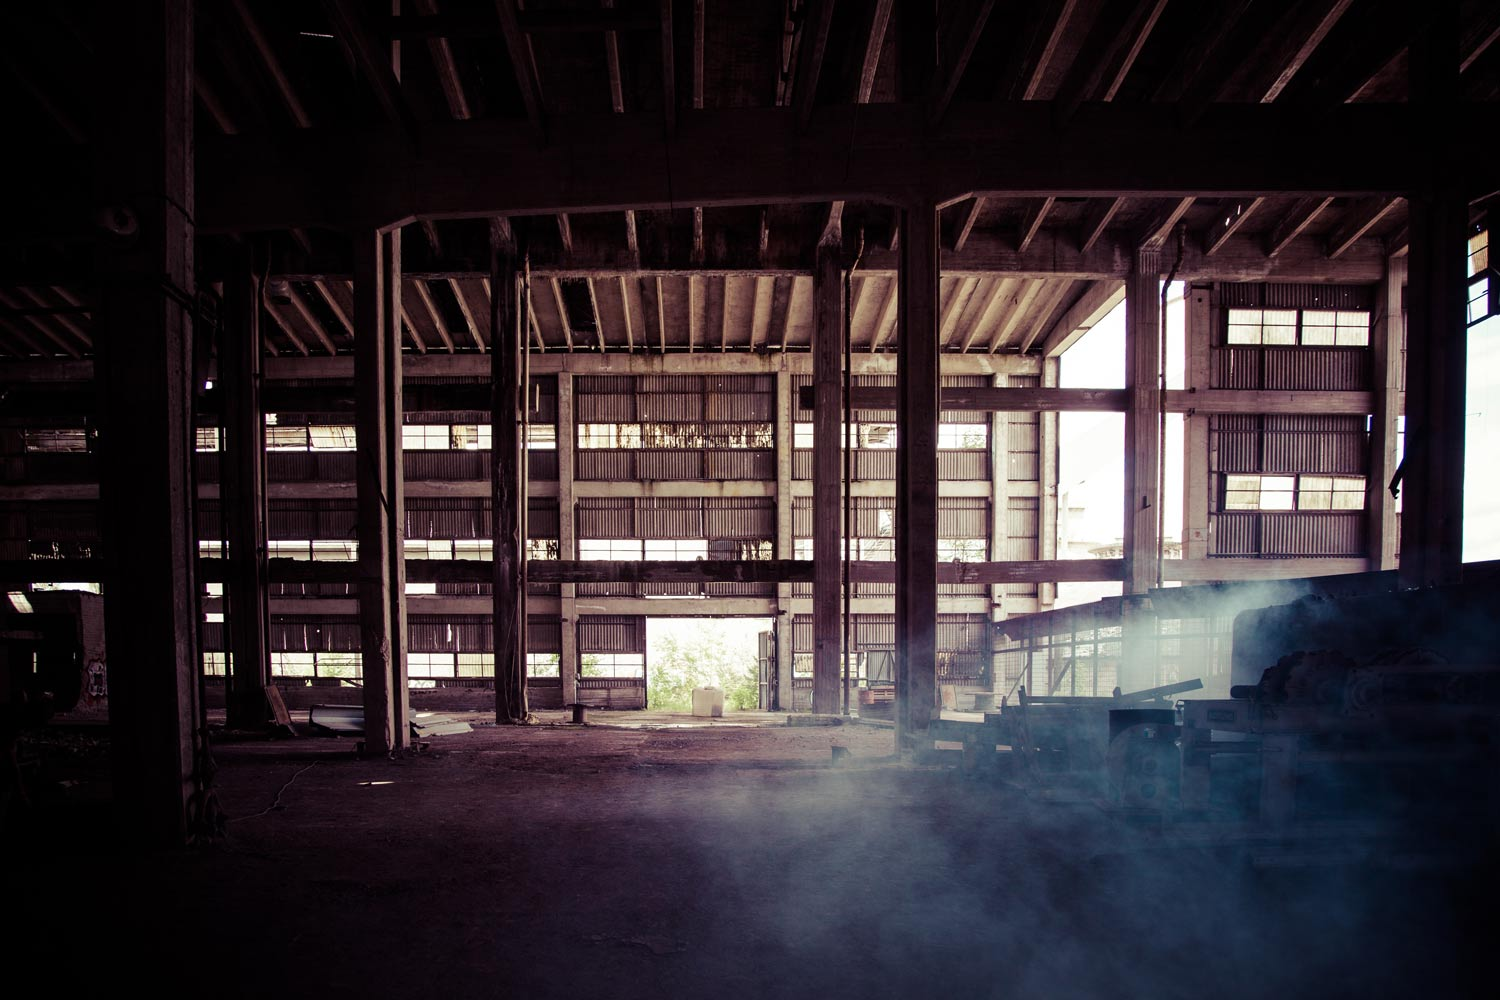 The forgotten past of abandoned steel mills